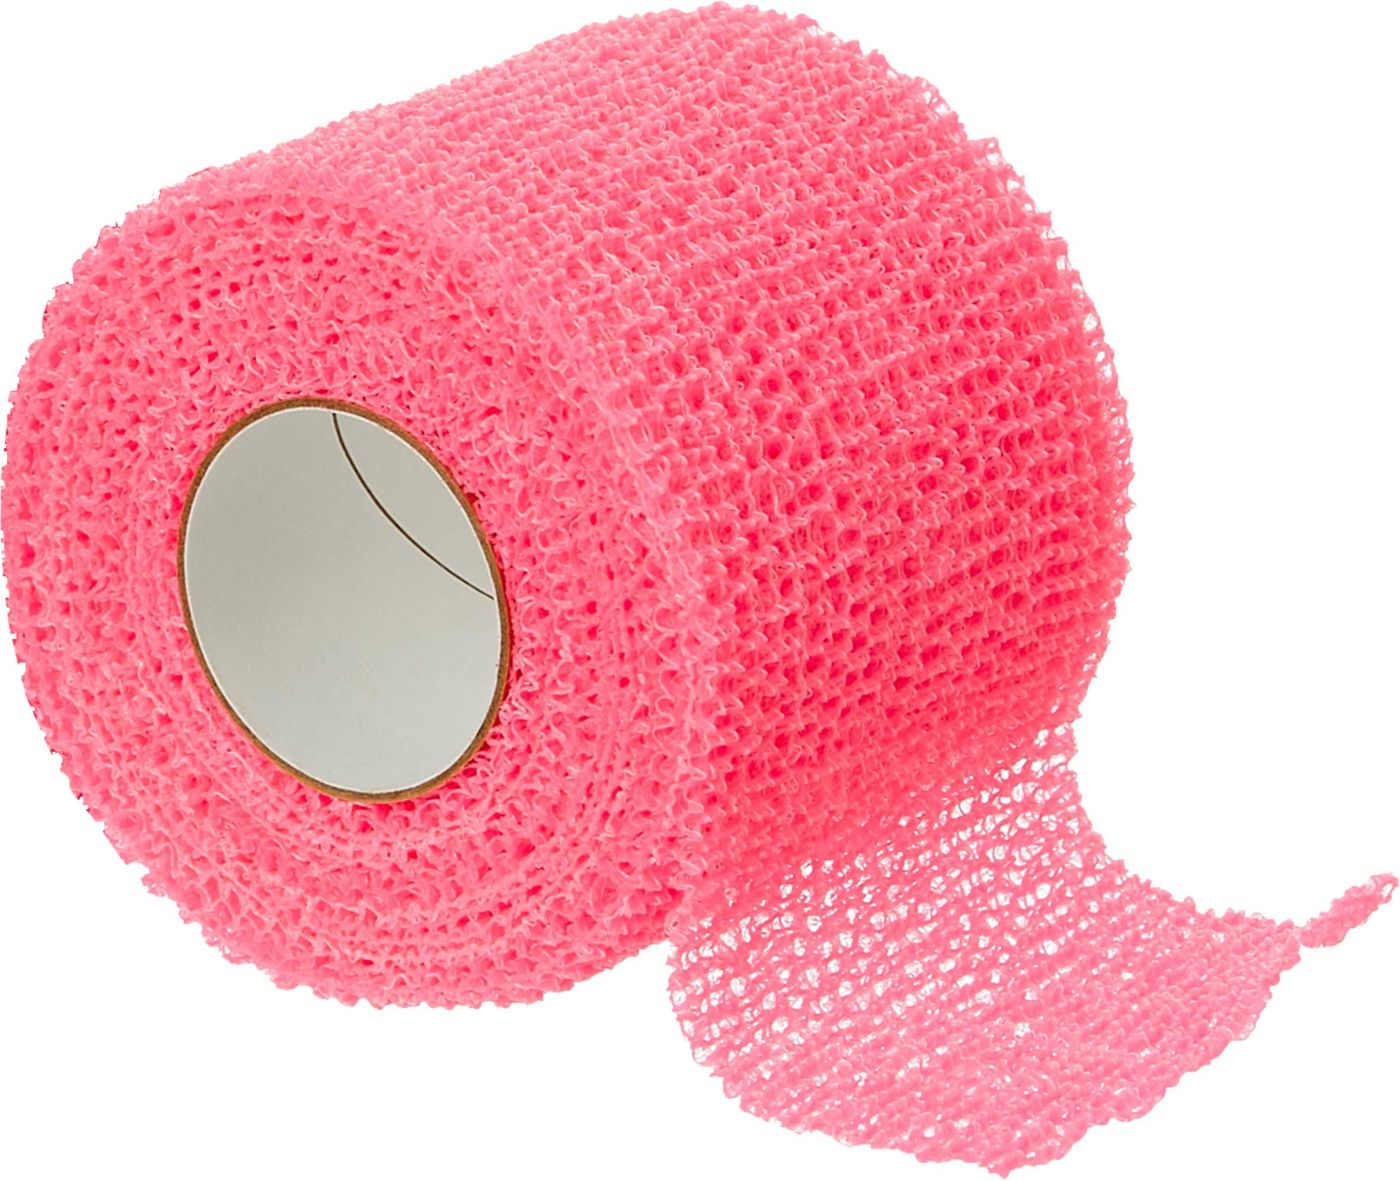 P-TEX Pink Cohesive Tape